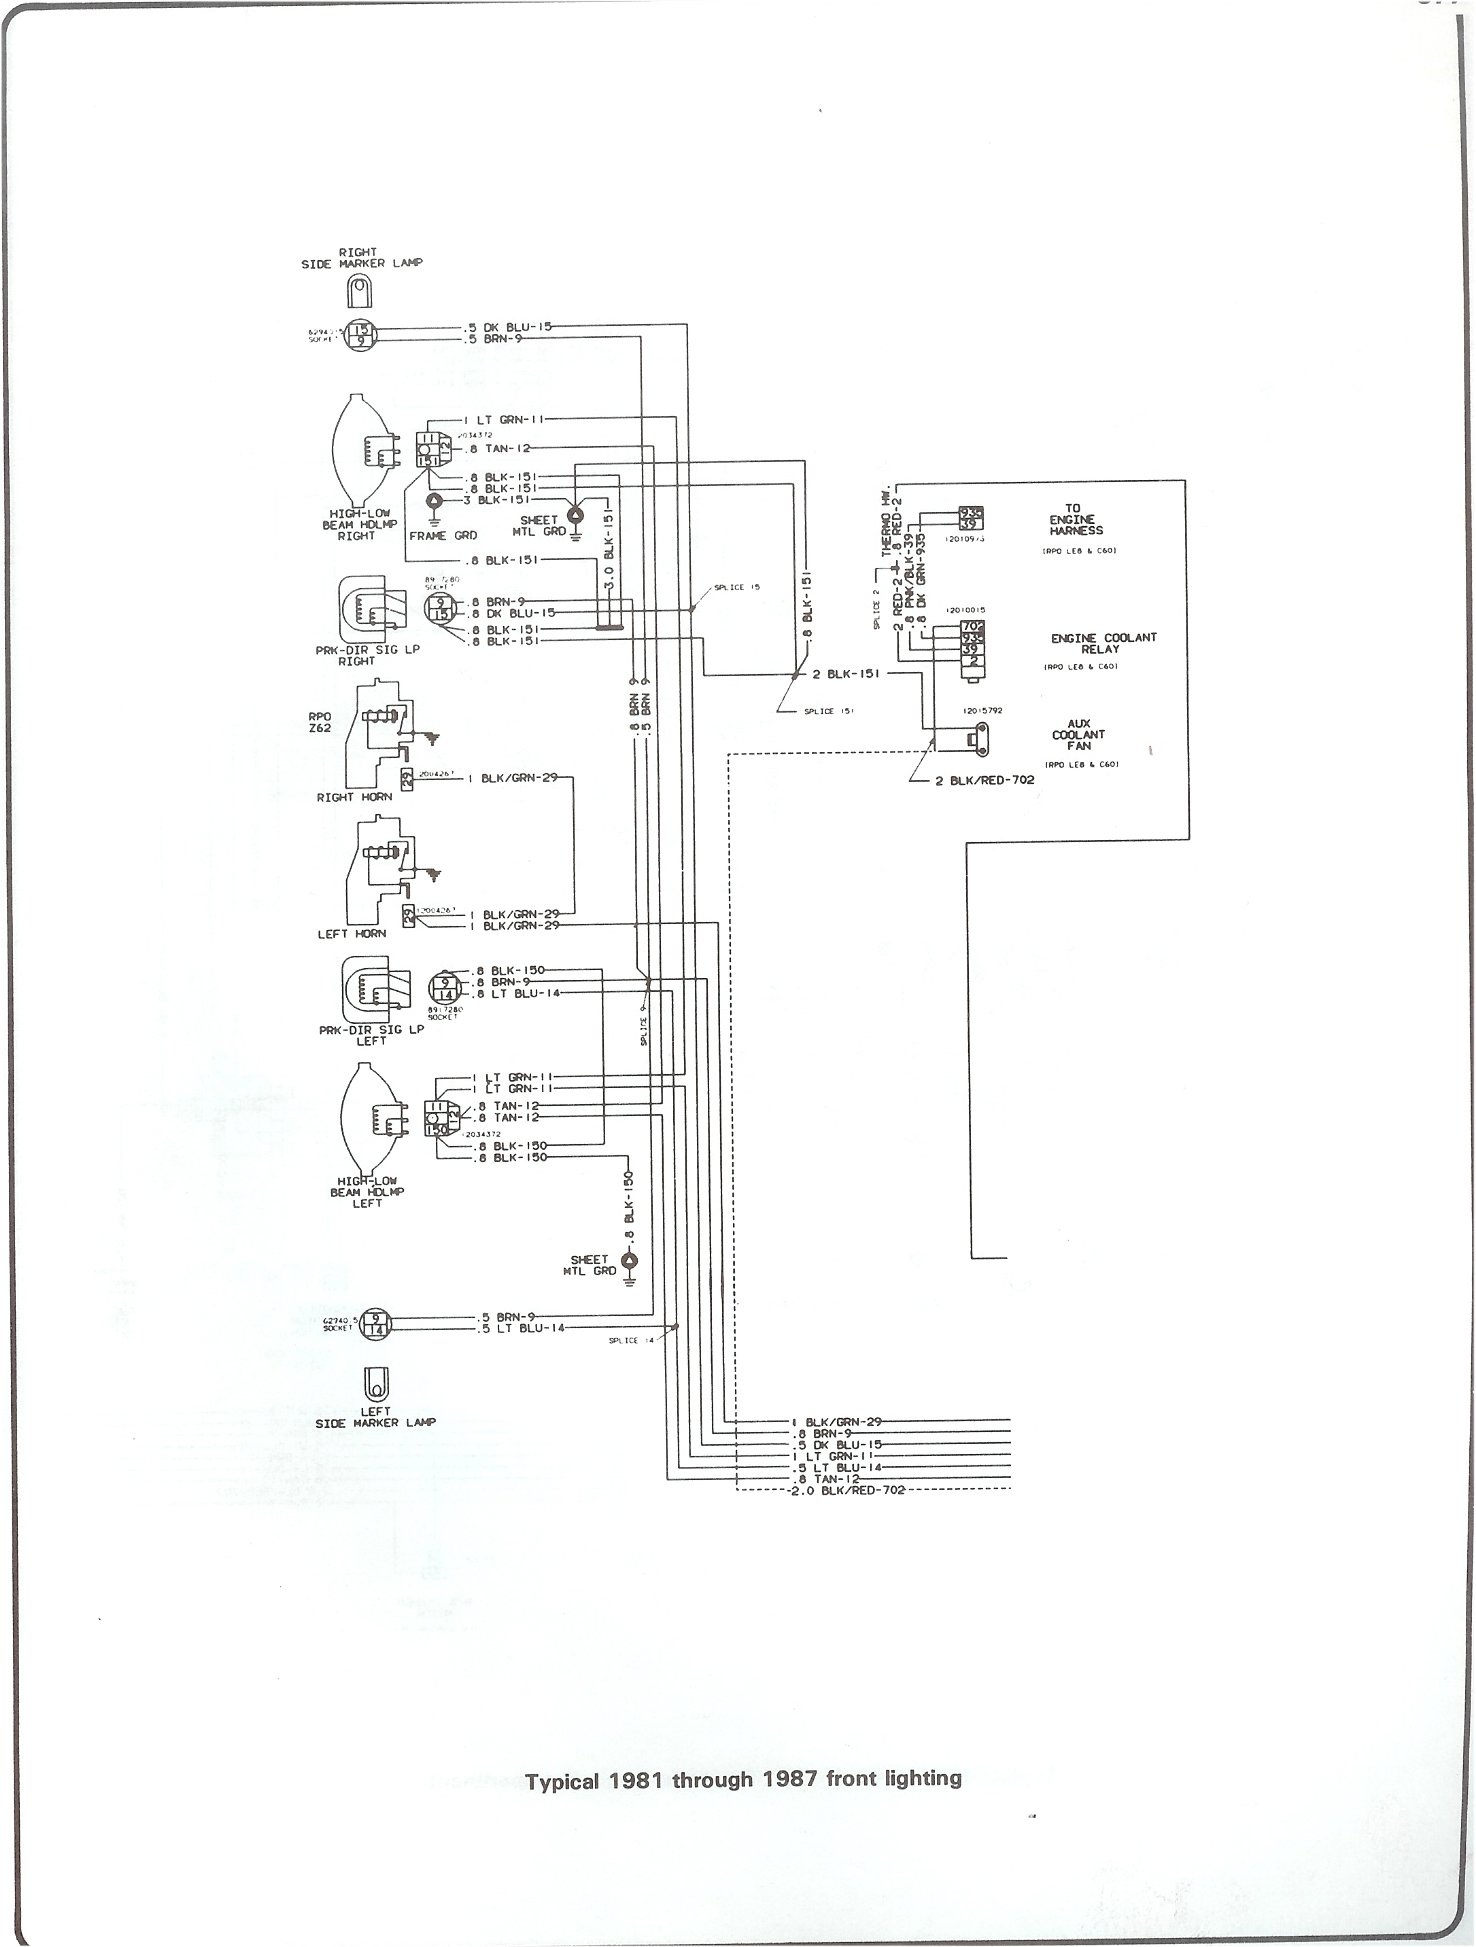 Complete 73-87 Wiring Diagrams on gmc truck electrical wiring diagrams, 1984 chevy ac electric diagrams, gmc truck fuse diagrams, 1984 gmc heater wiring diagram, 2010 gmc light diagrams, 1984 gmc wiring diagram light, 2001 gmc sierra wiring diagrams,